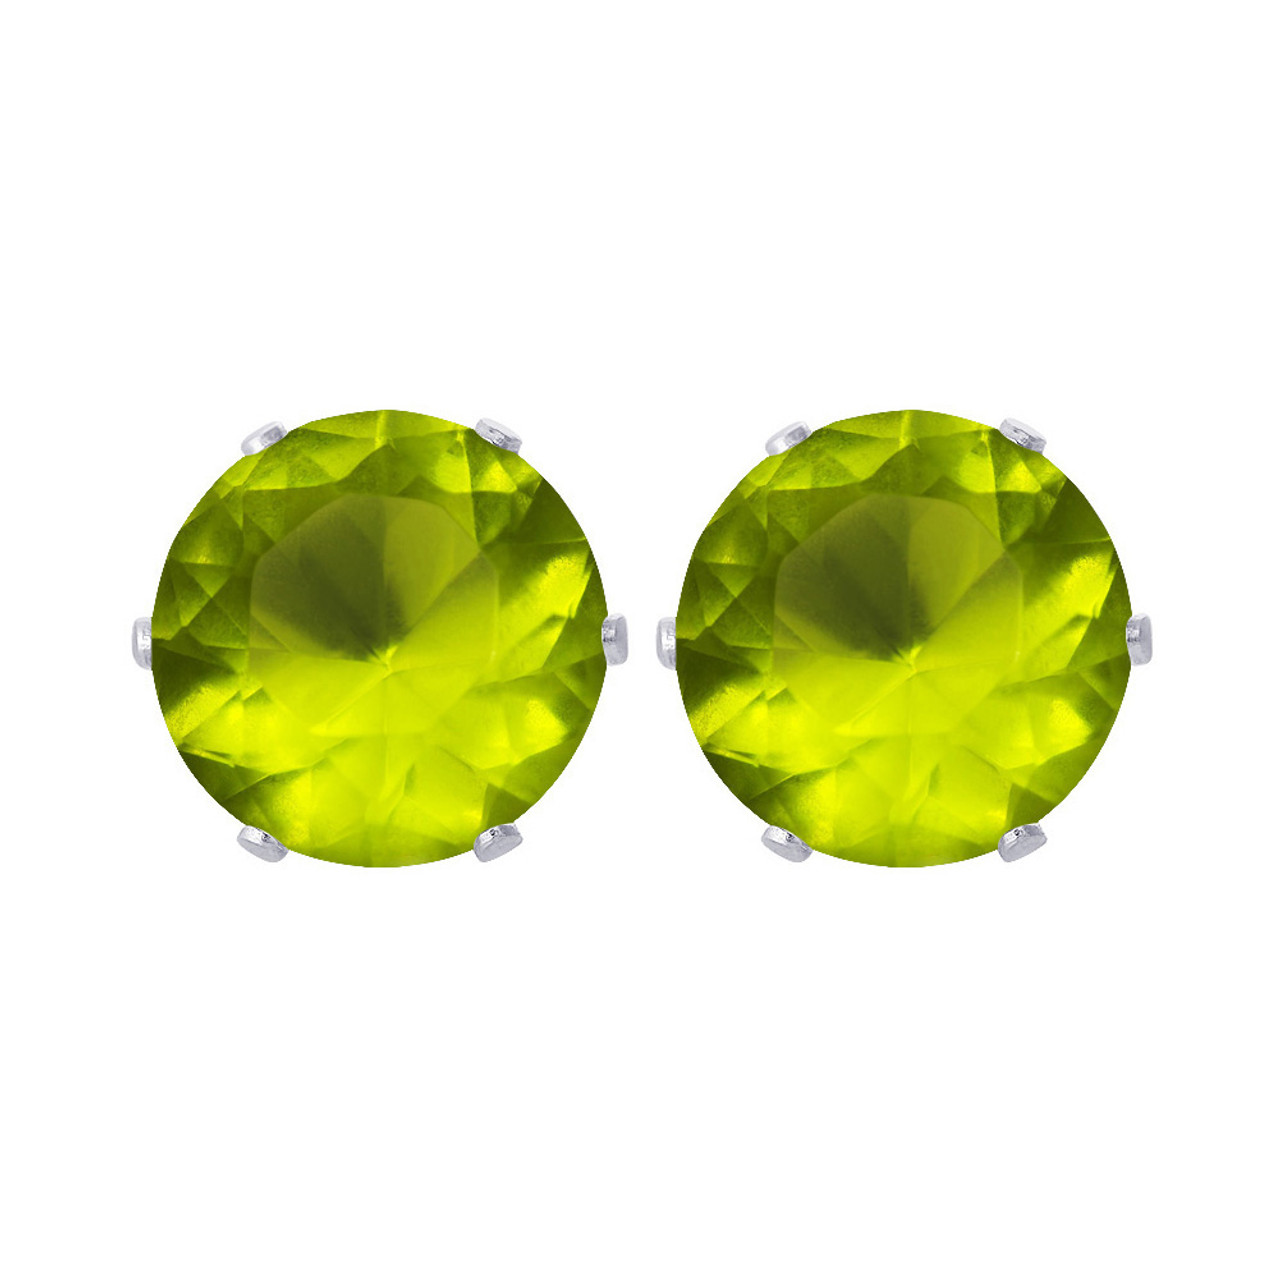 6mm Round Peridot August Birthstone Stud Earrings